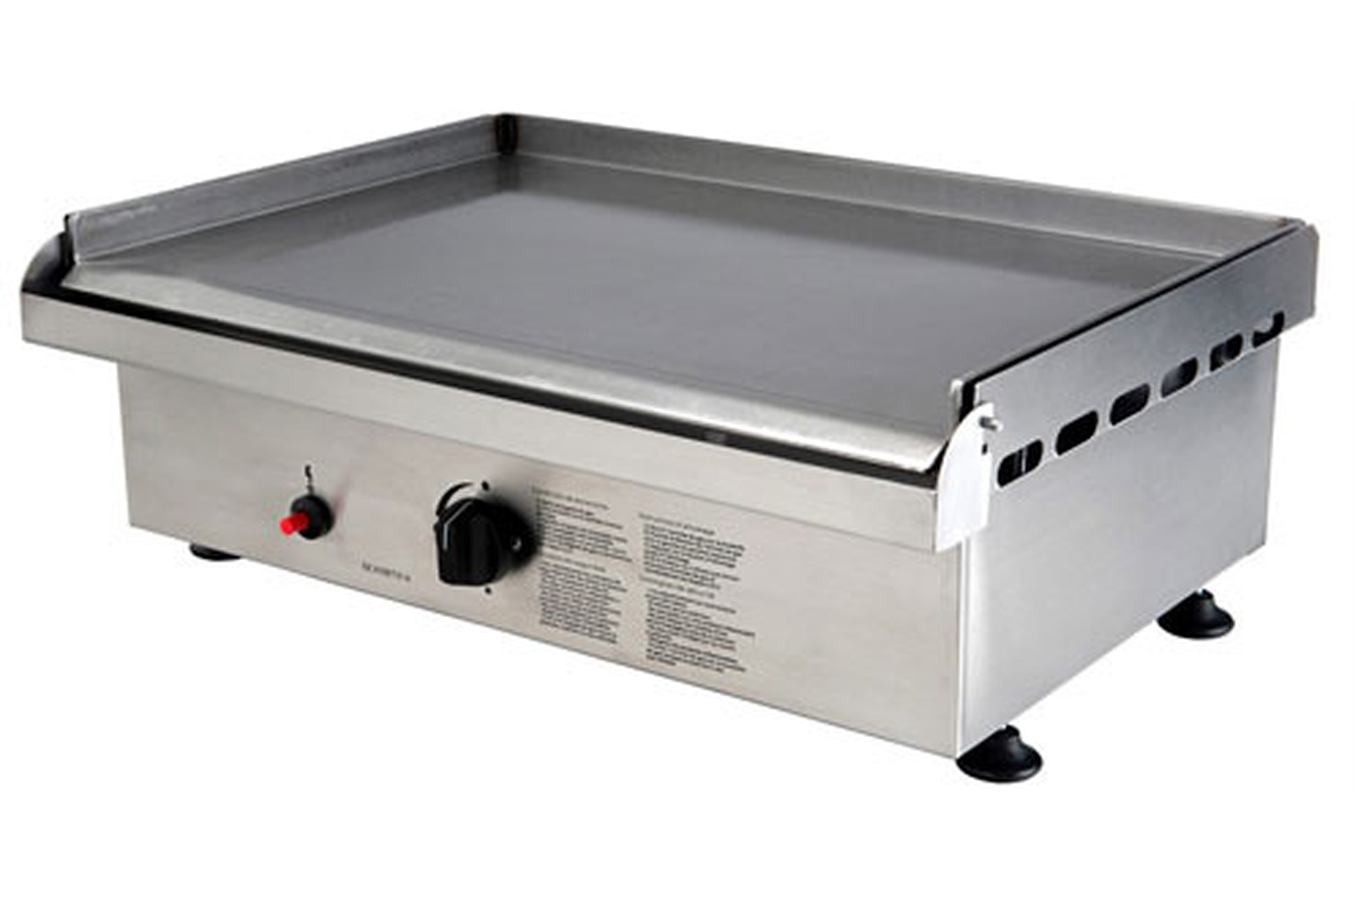 Plancha pro simogas ole 60 3453740 darty for Plancha cuisine